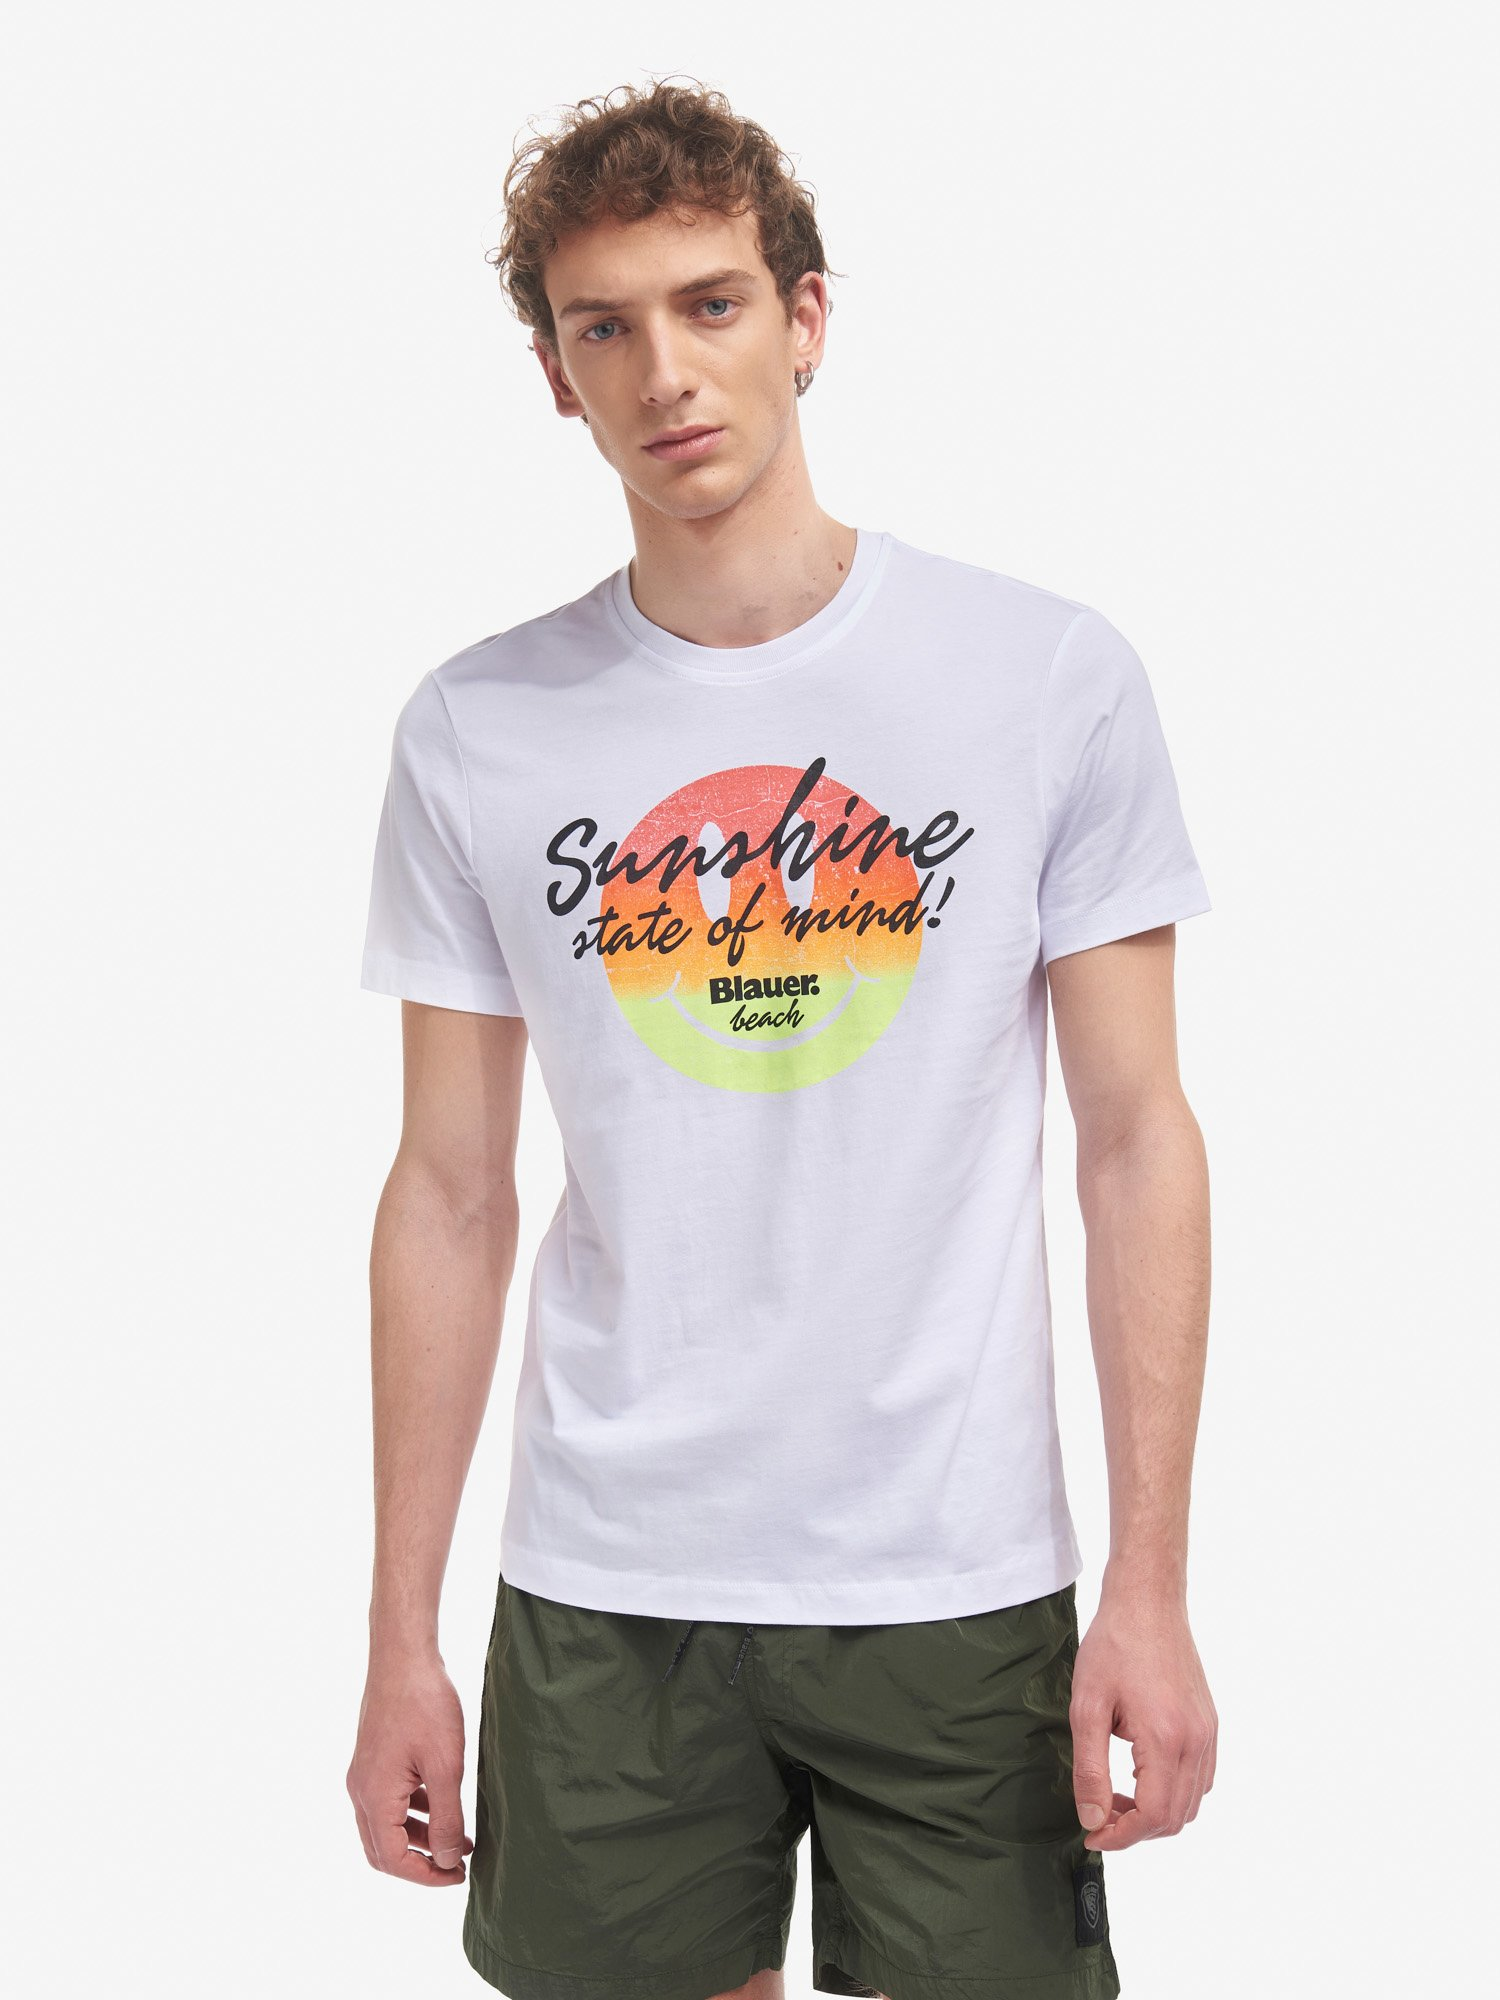 T-SHIRT SUNSHINE - Blauer